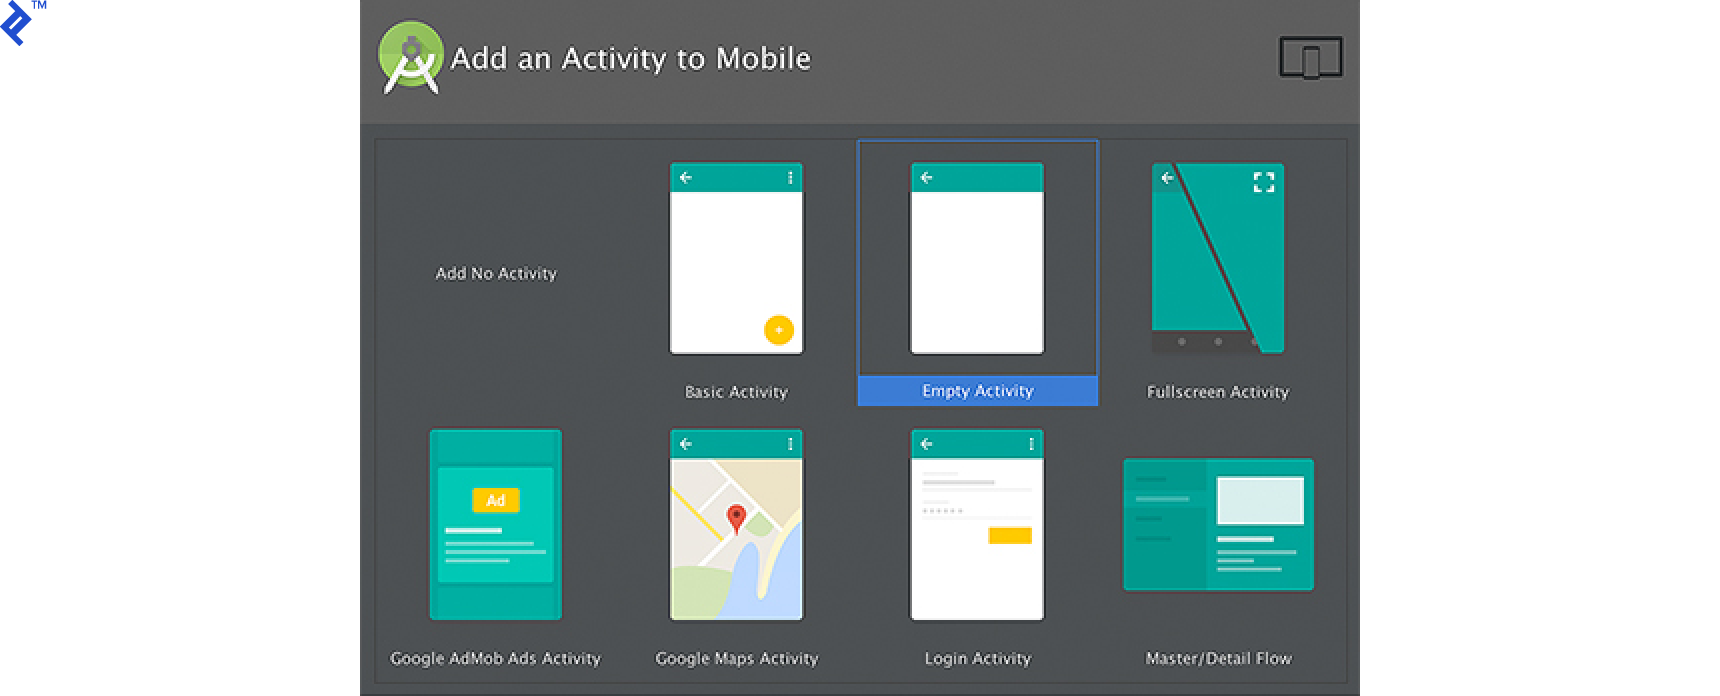 Screen shot: Add an Activity to Mobile screen